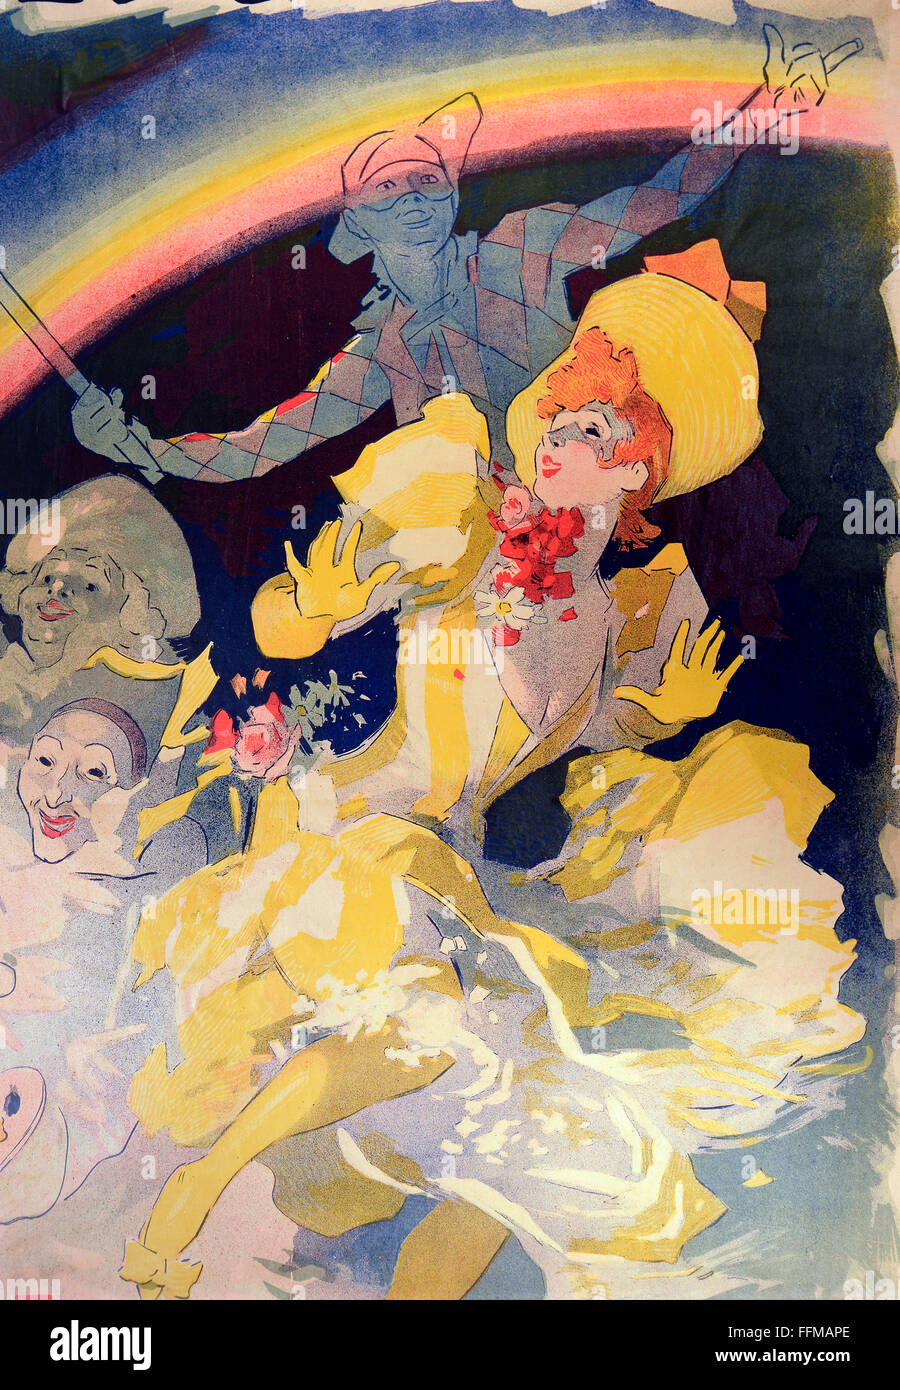 posters, advertising poster for the pantomime ballet 'L'Arc en Ciel' (The Rainbow) at the music hall - Stock Image